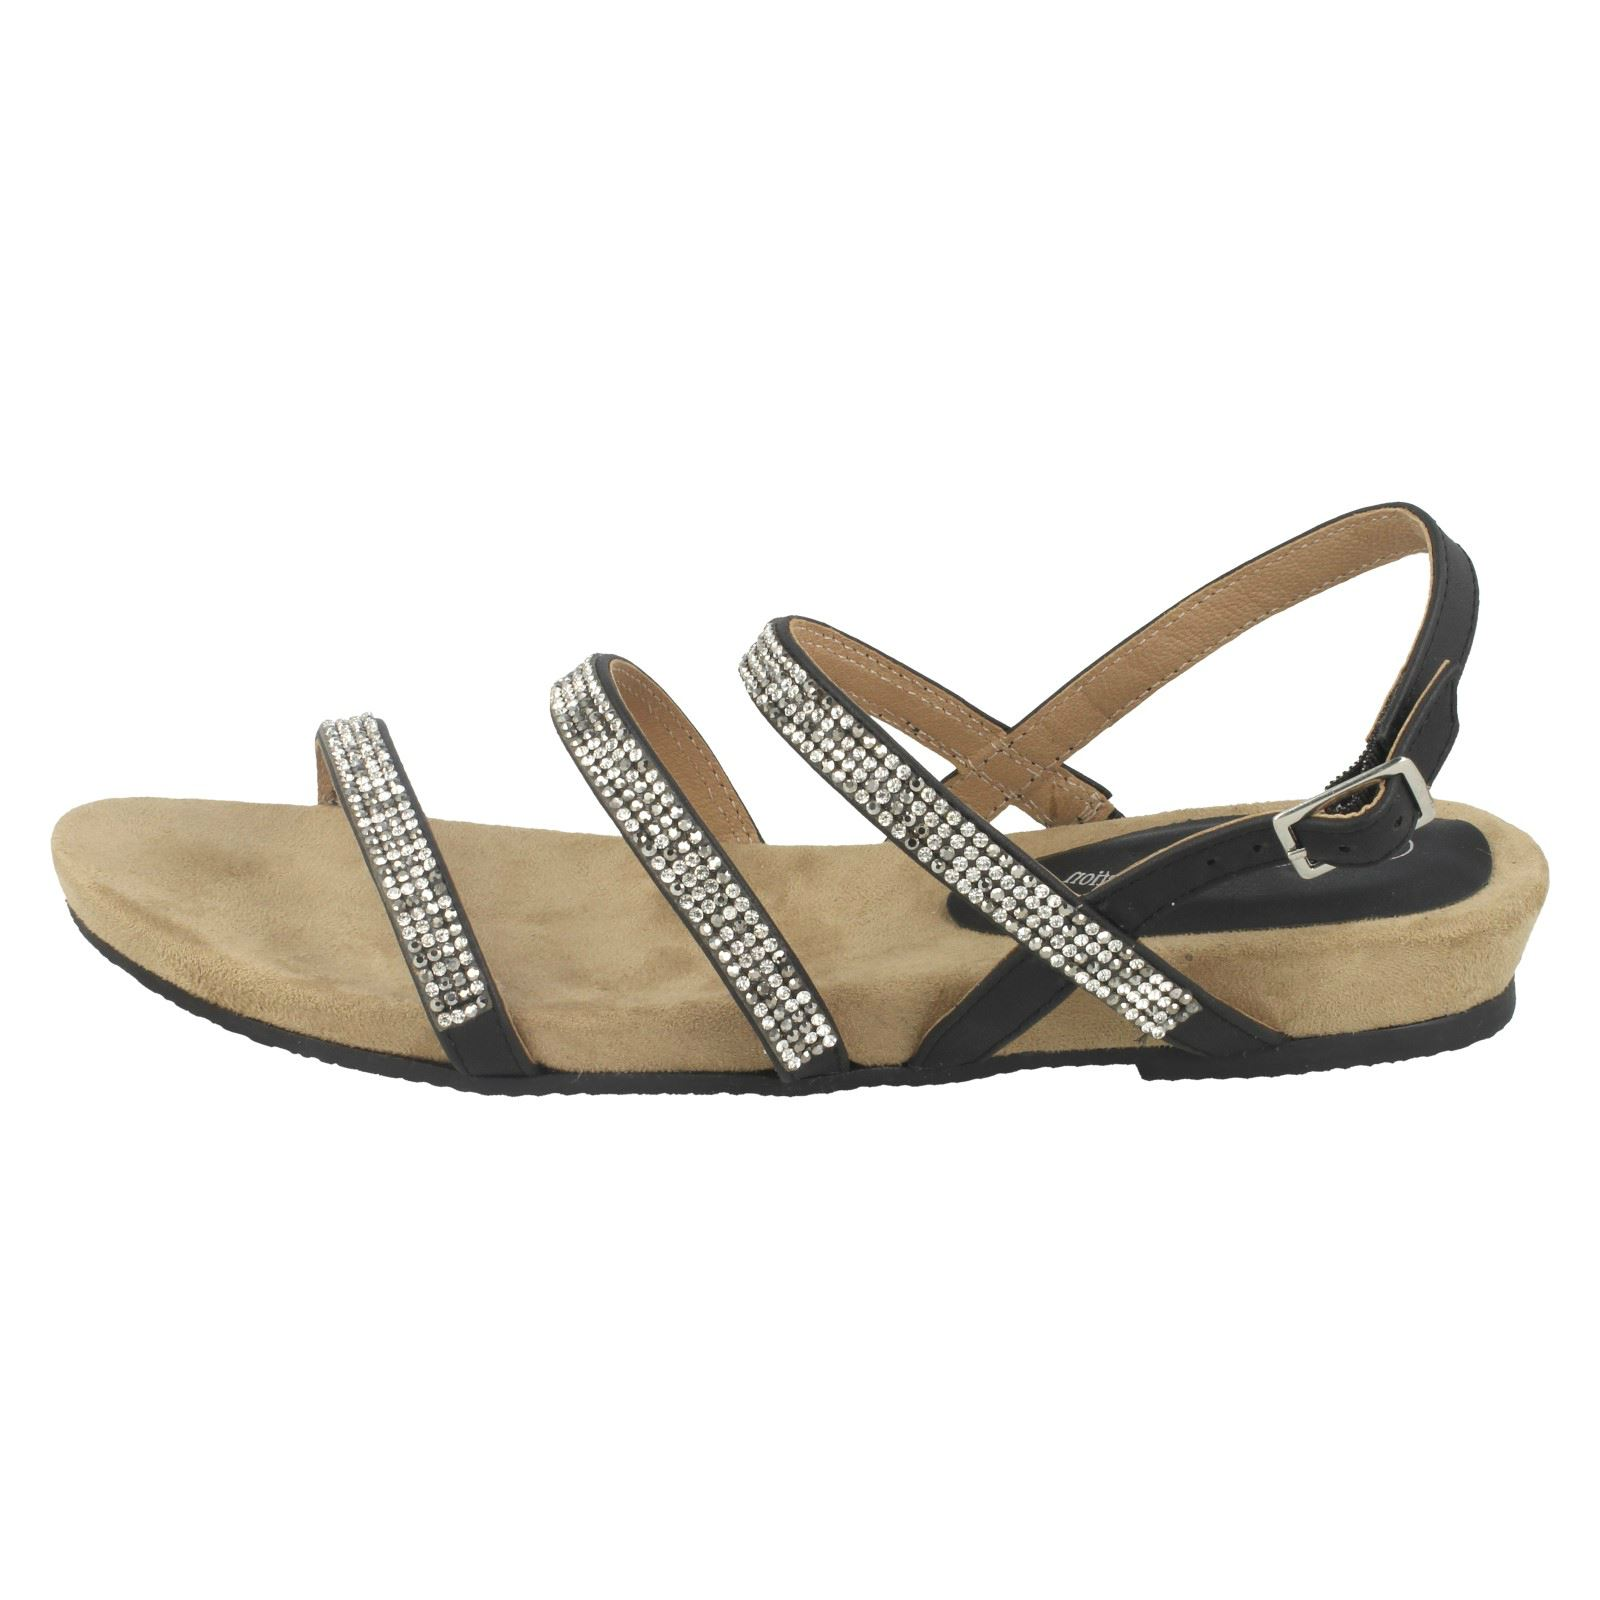 En Tira Mujer Pedrería Leather Tobillo Sandalias Sintético Collection 1xqP6XPY